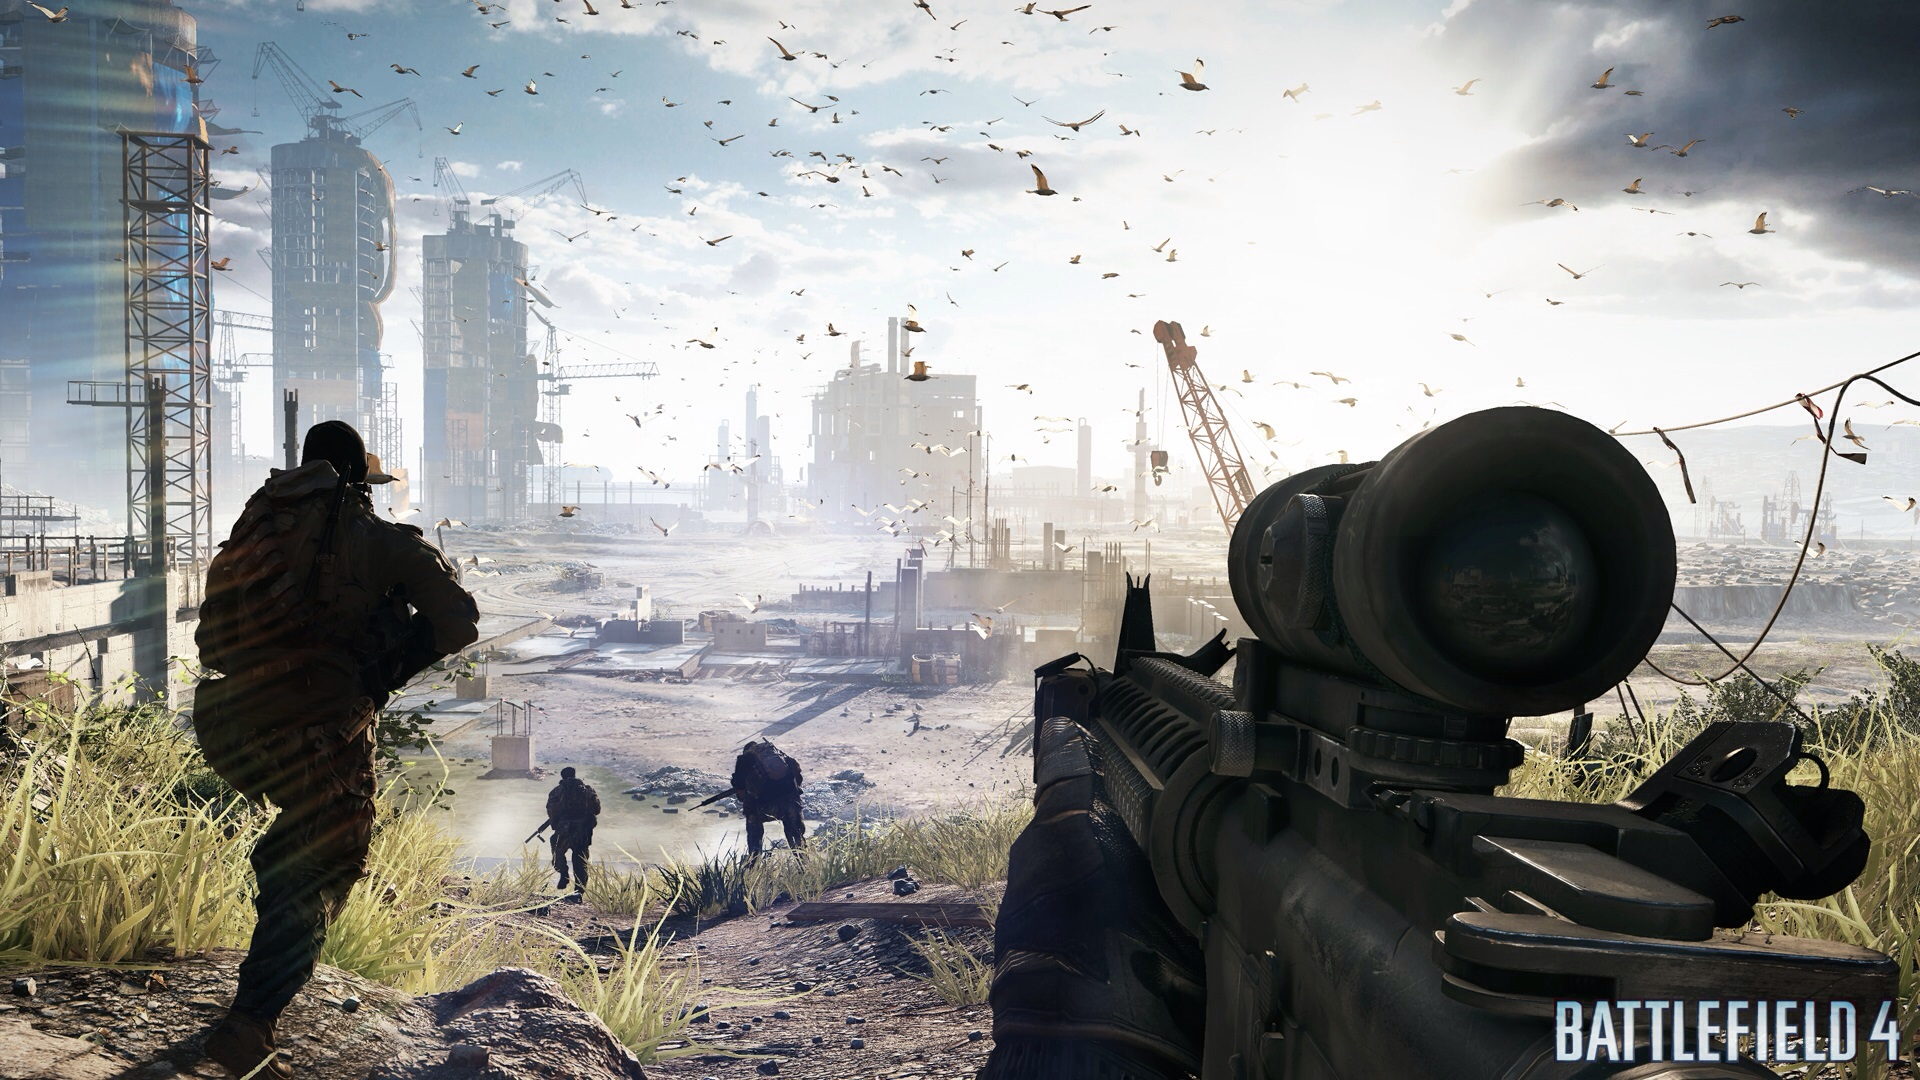 Sony confirms you'll be able to play Battlefield 4 on your Vita via Remote Play at launch